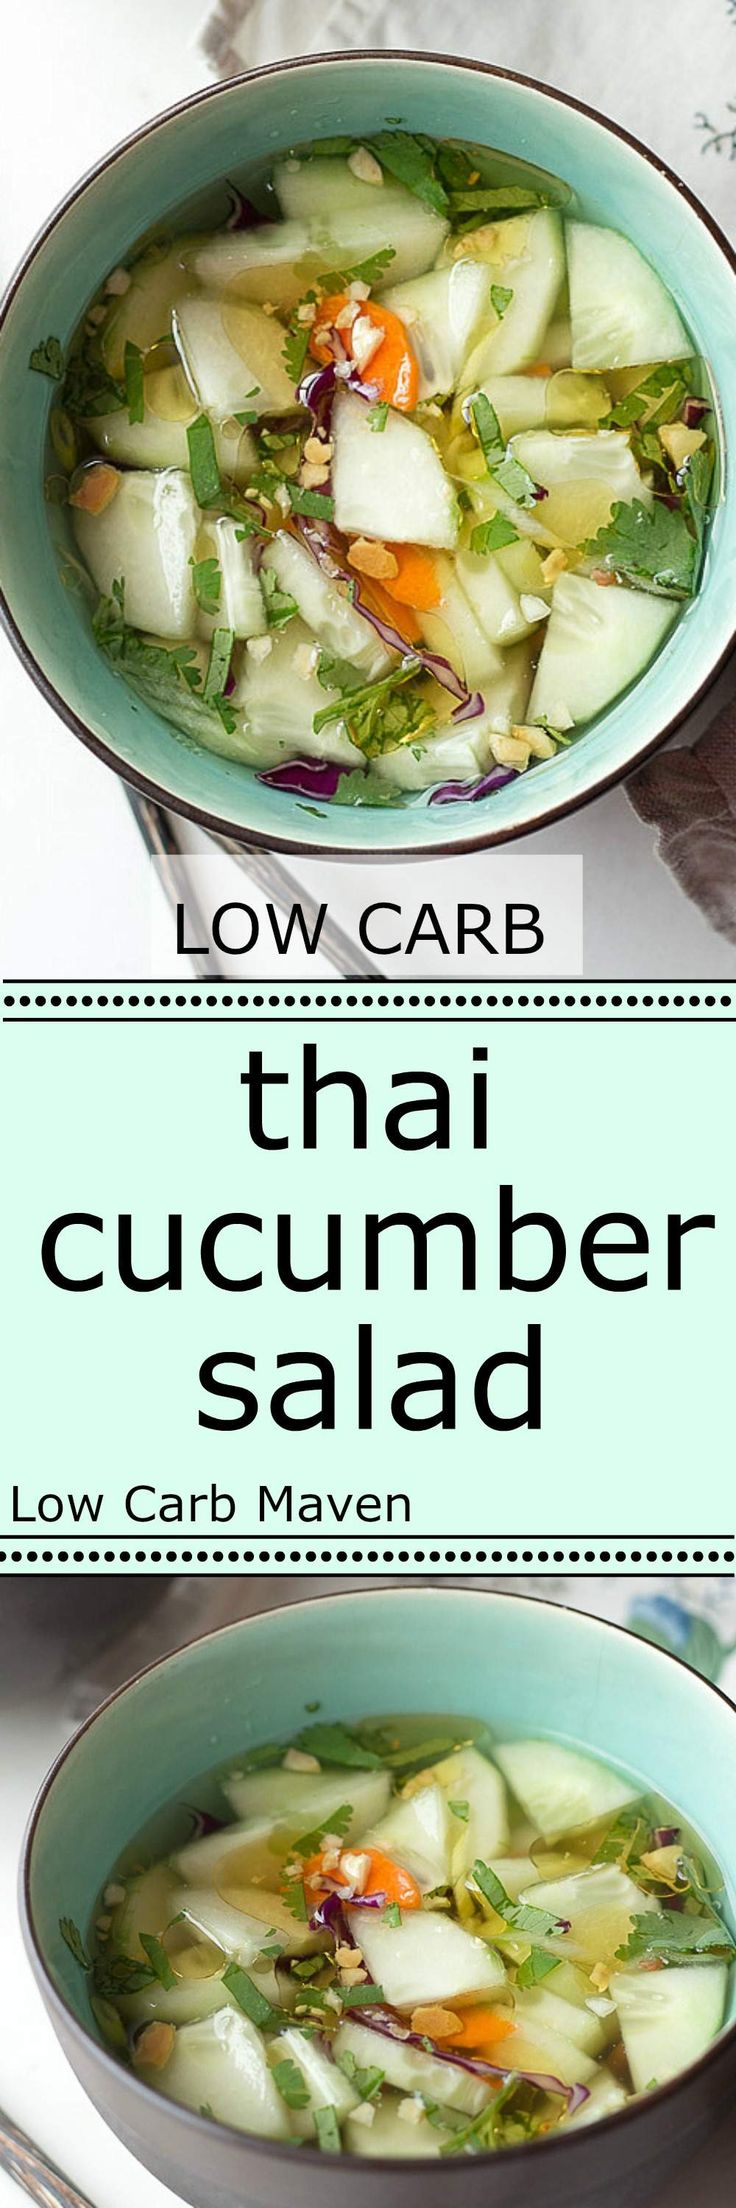 An authentic tasting Thai cucumber salad that's perfect for any low carb diet.